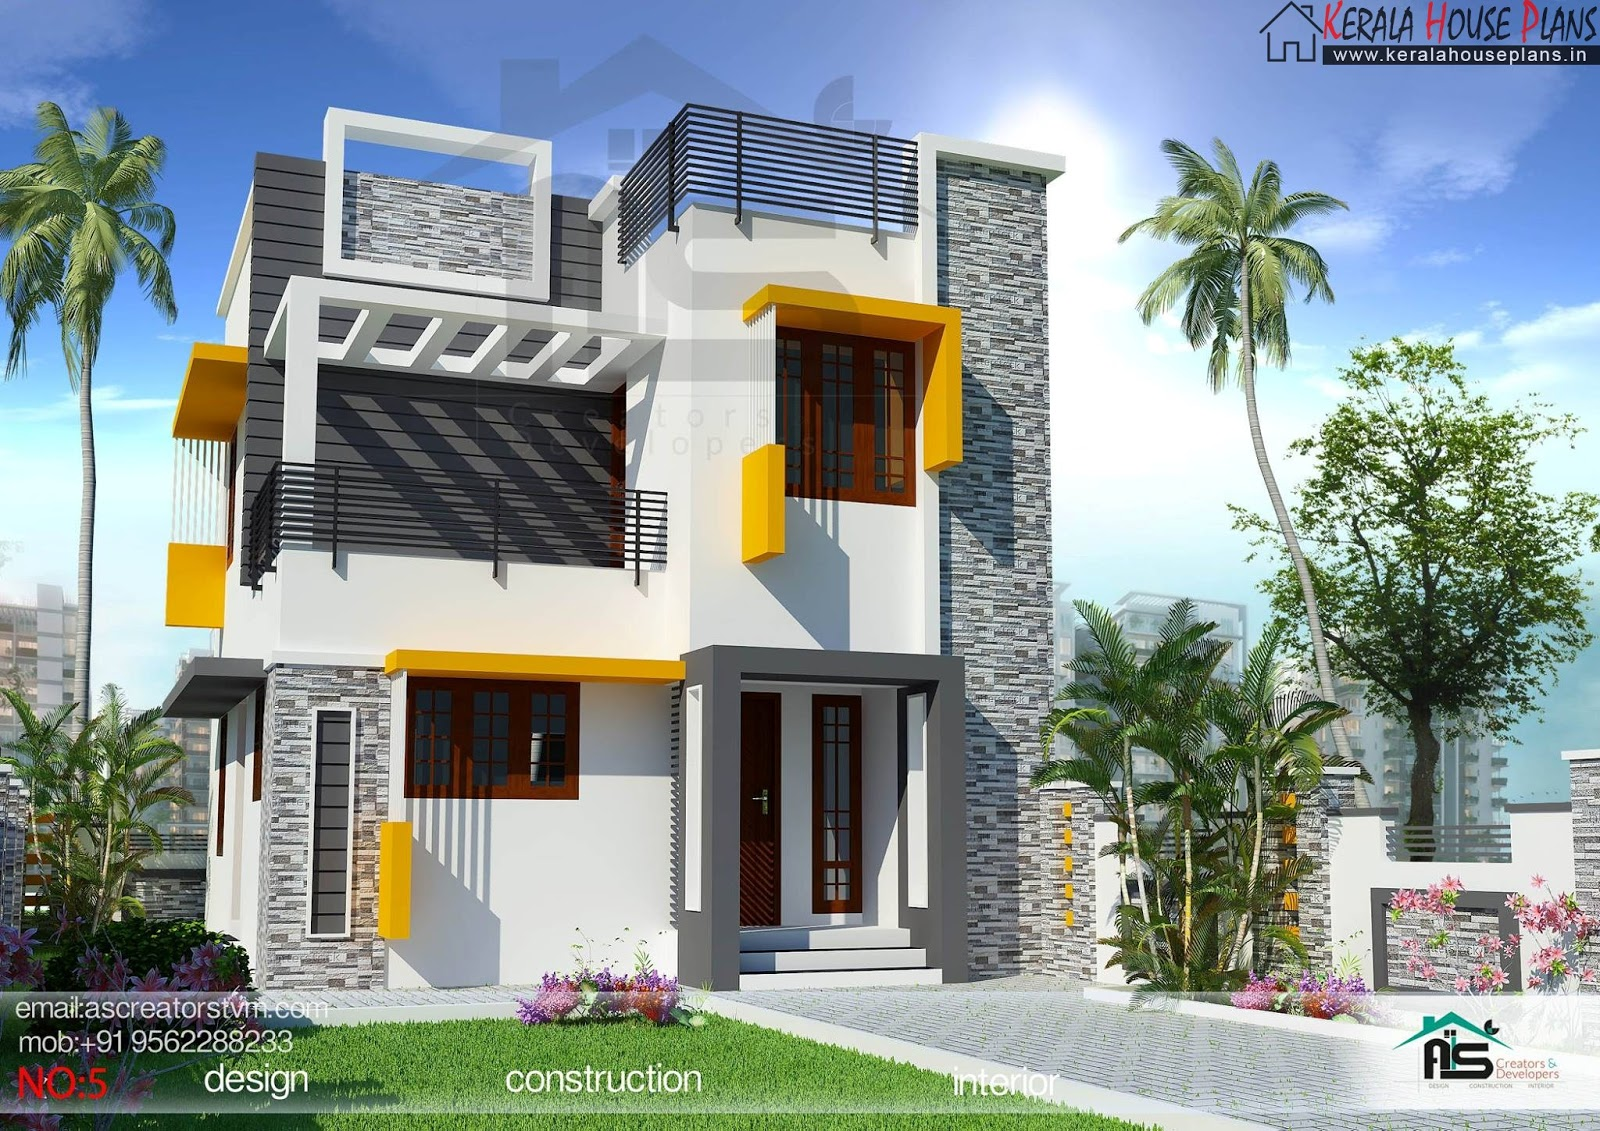 3 Bed Room Single Floor Kerala House Plan Joy Studio